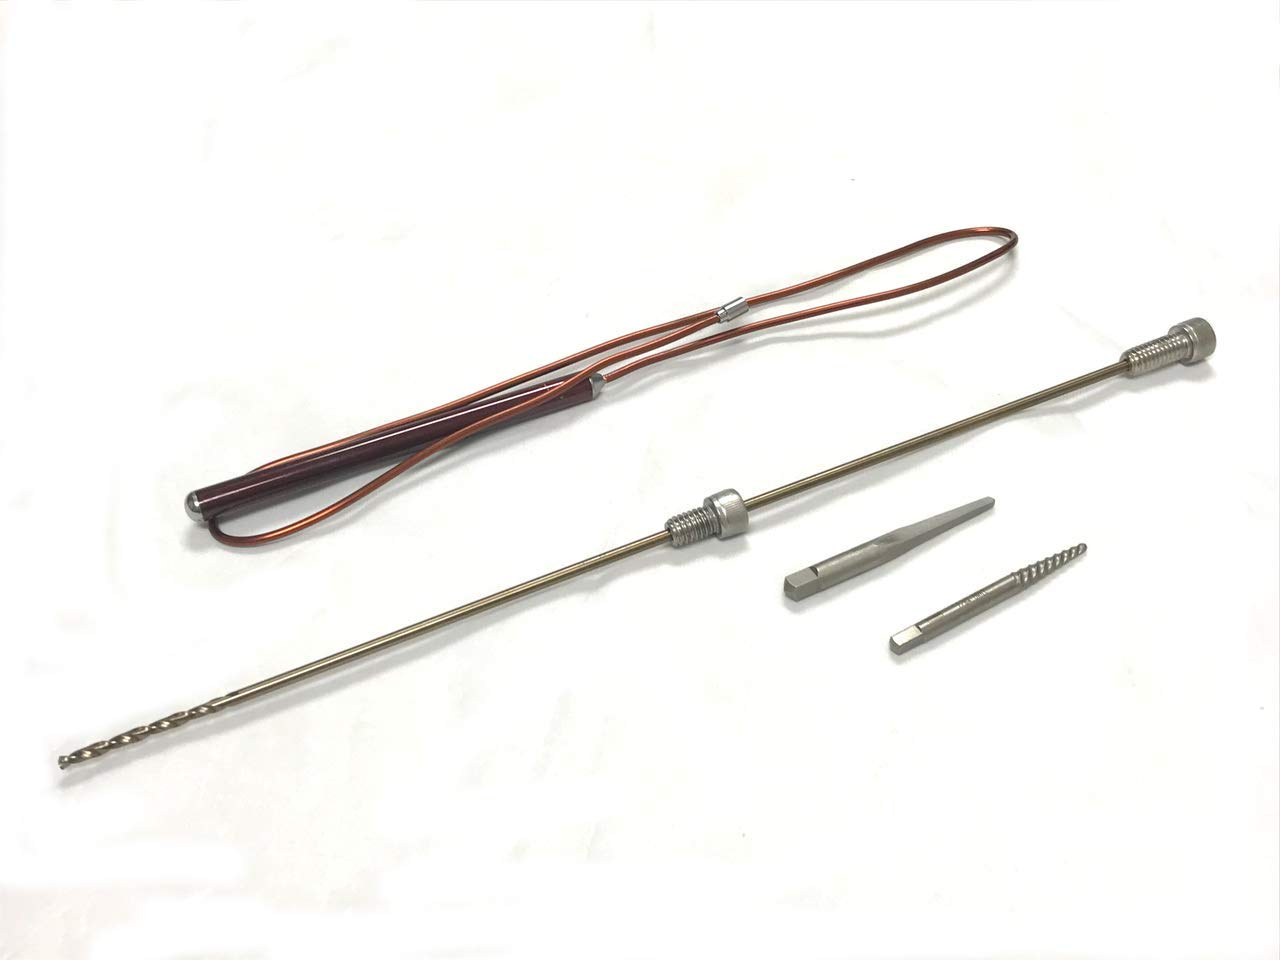 DIFFERENTIAL PINION SHAFT LOCK BOLT EXTRACTOR SET PRO